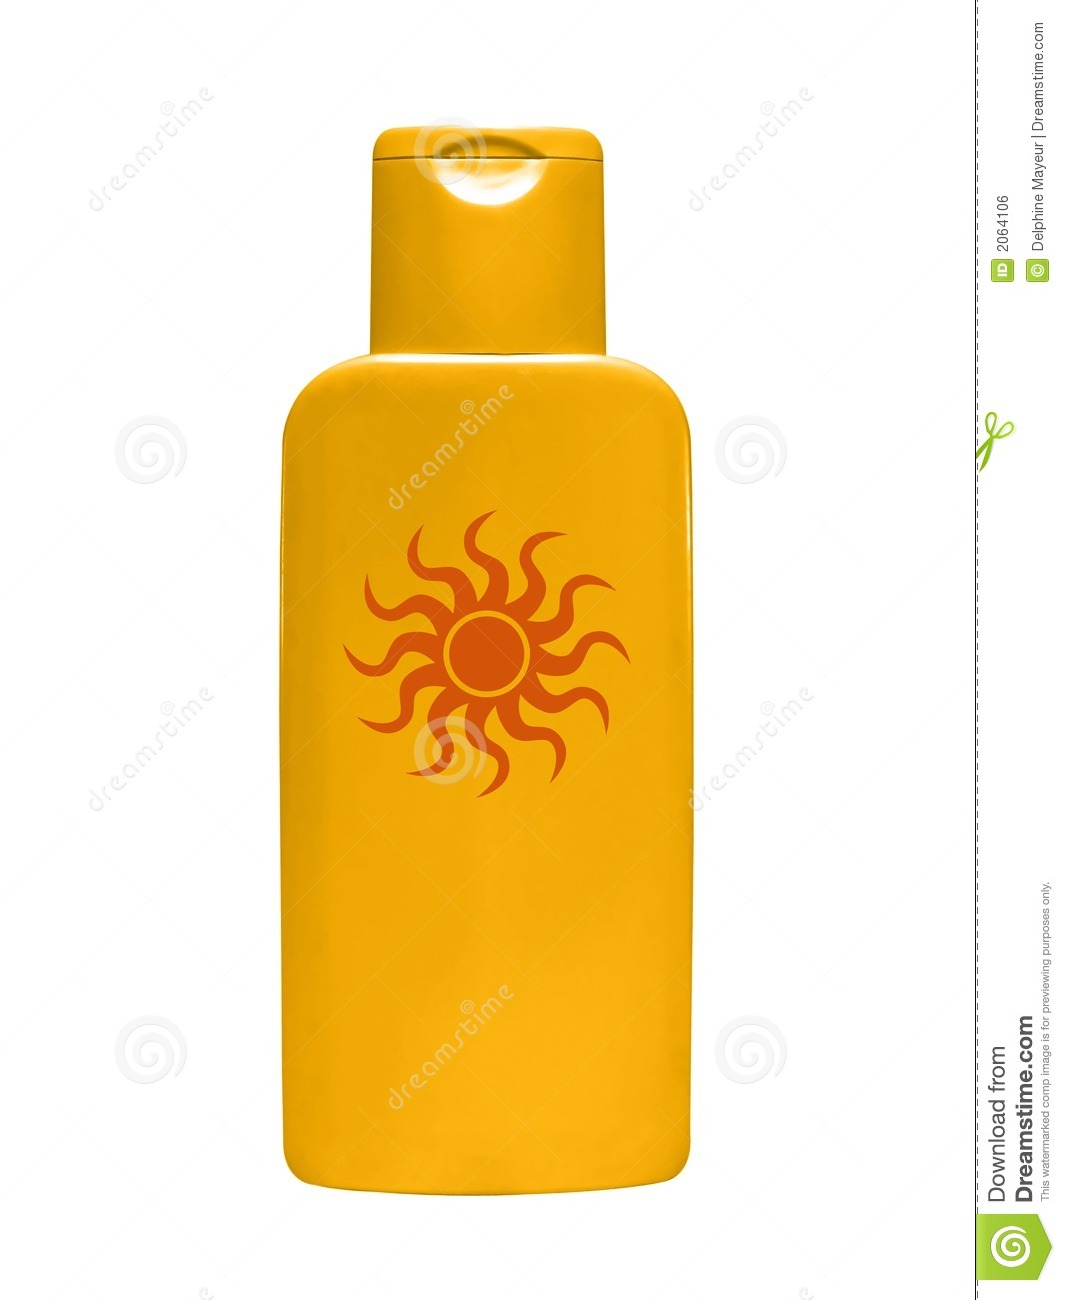 Golden plastic bottle of sun block cream on white background.